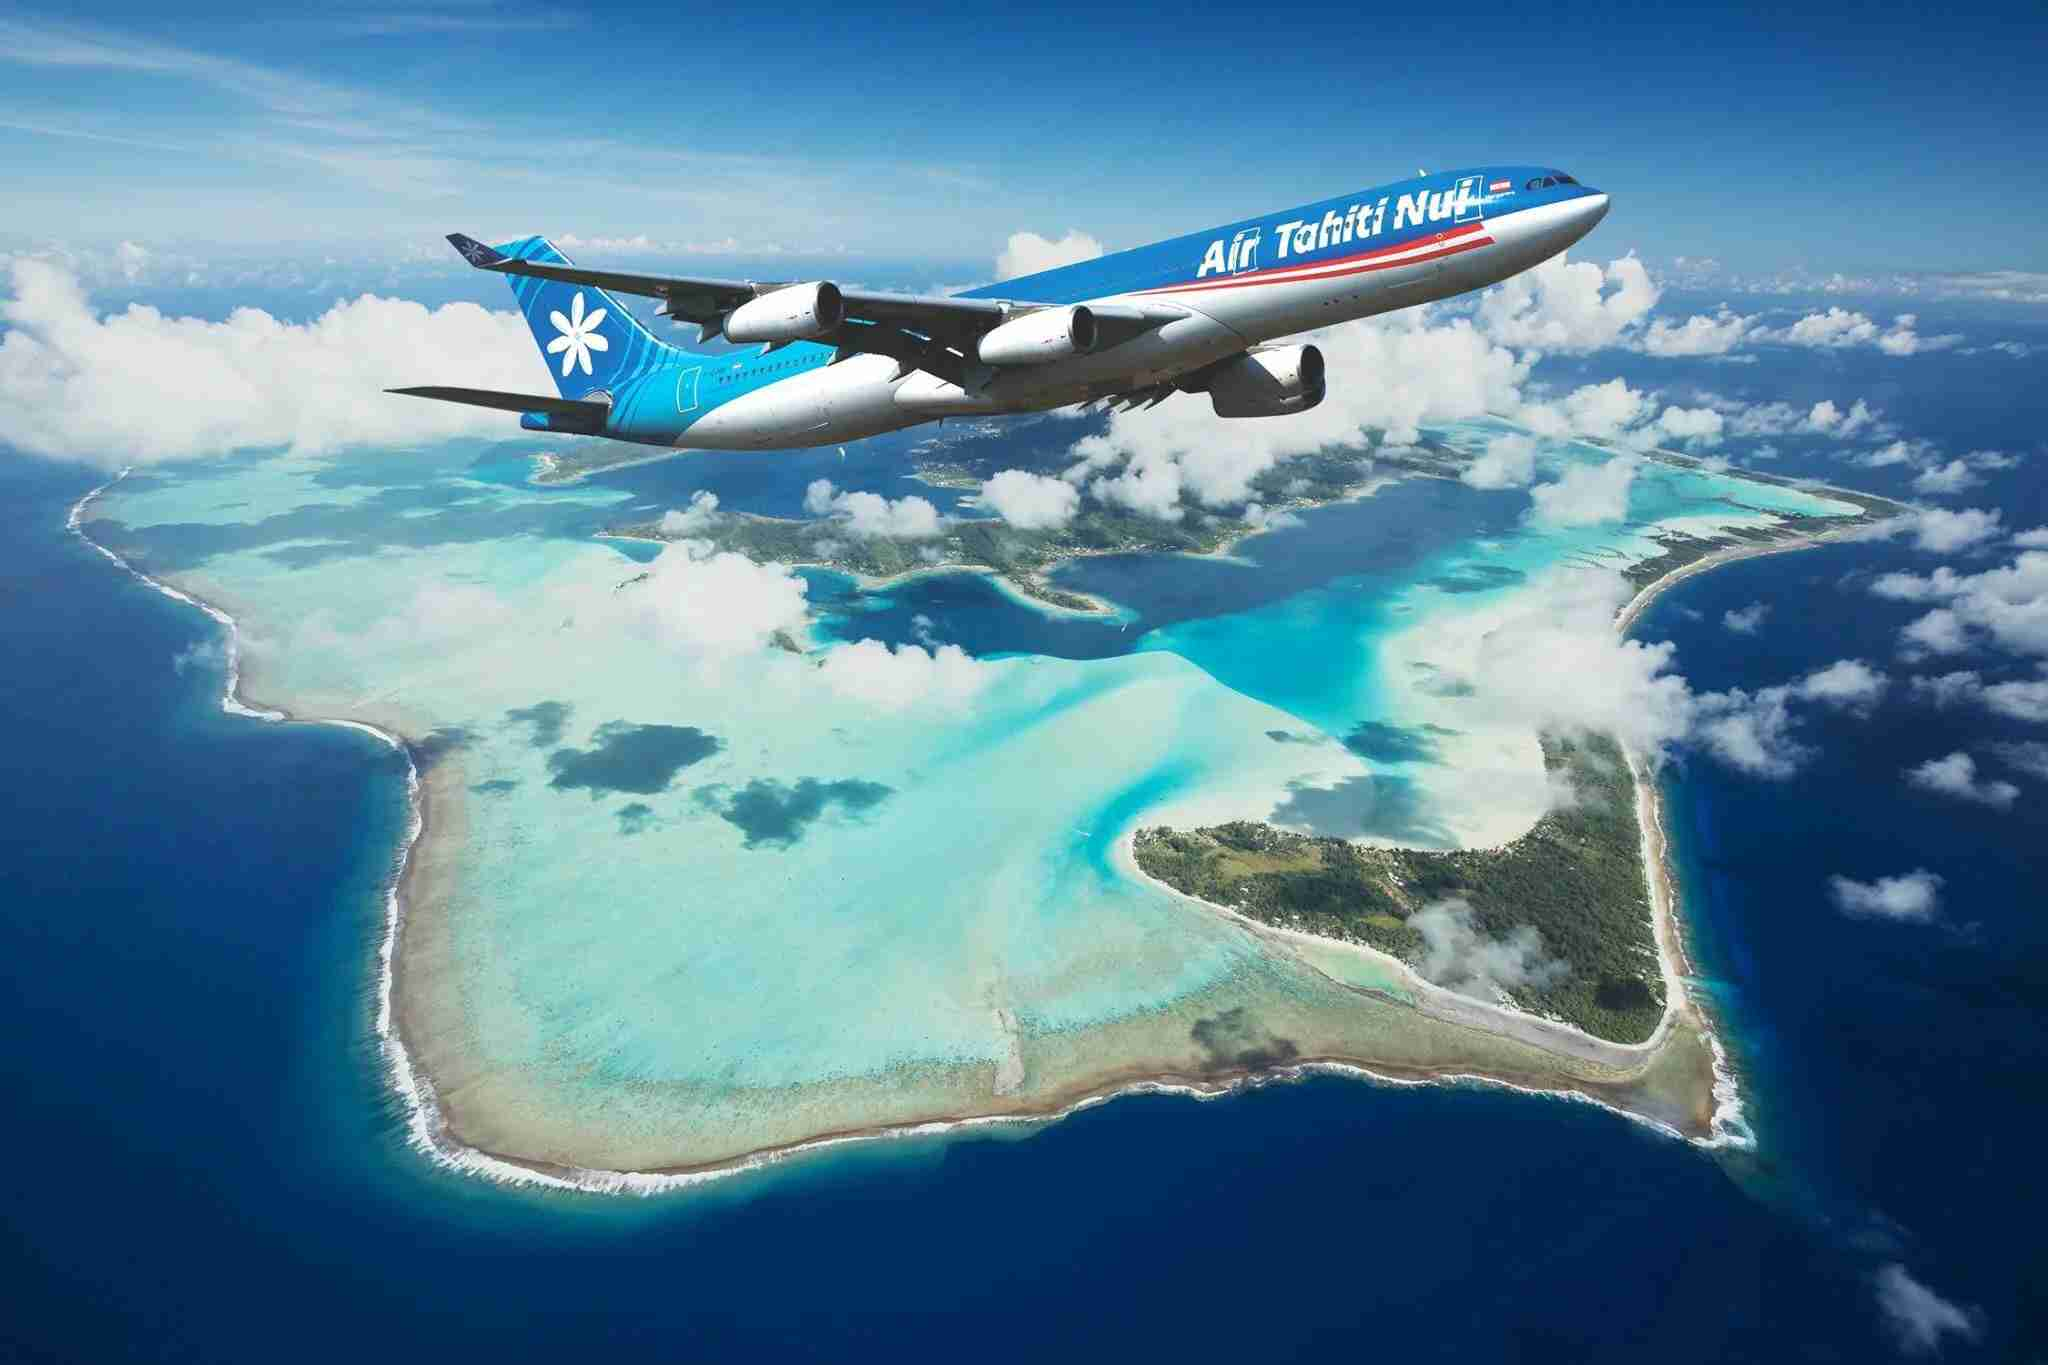 Photo courtesy of Air Tahiti Nui